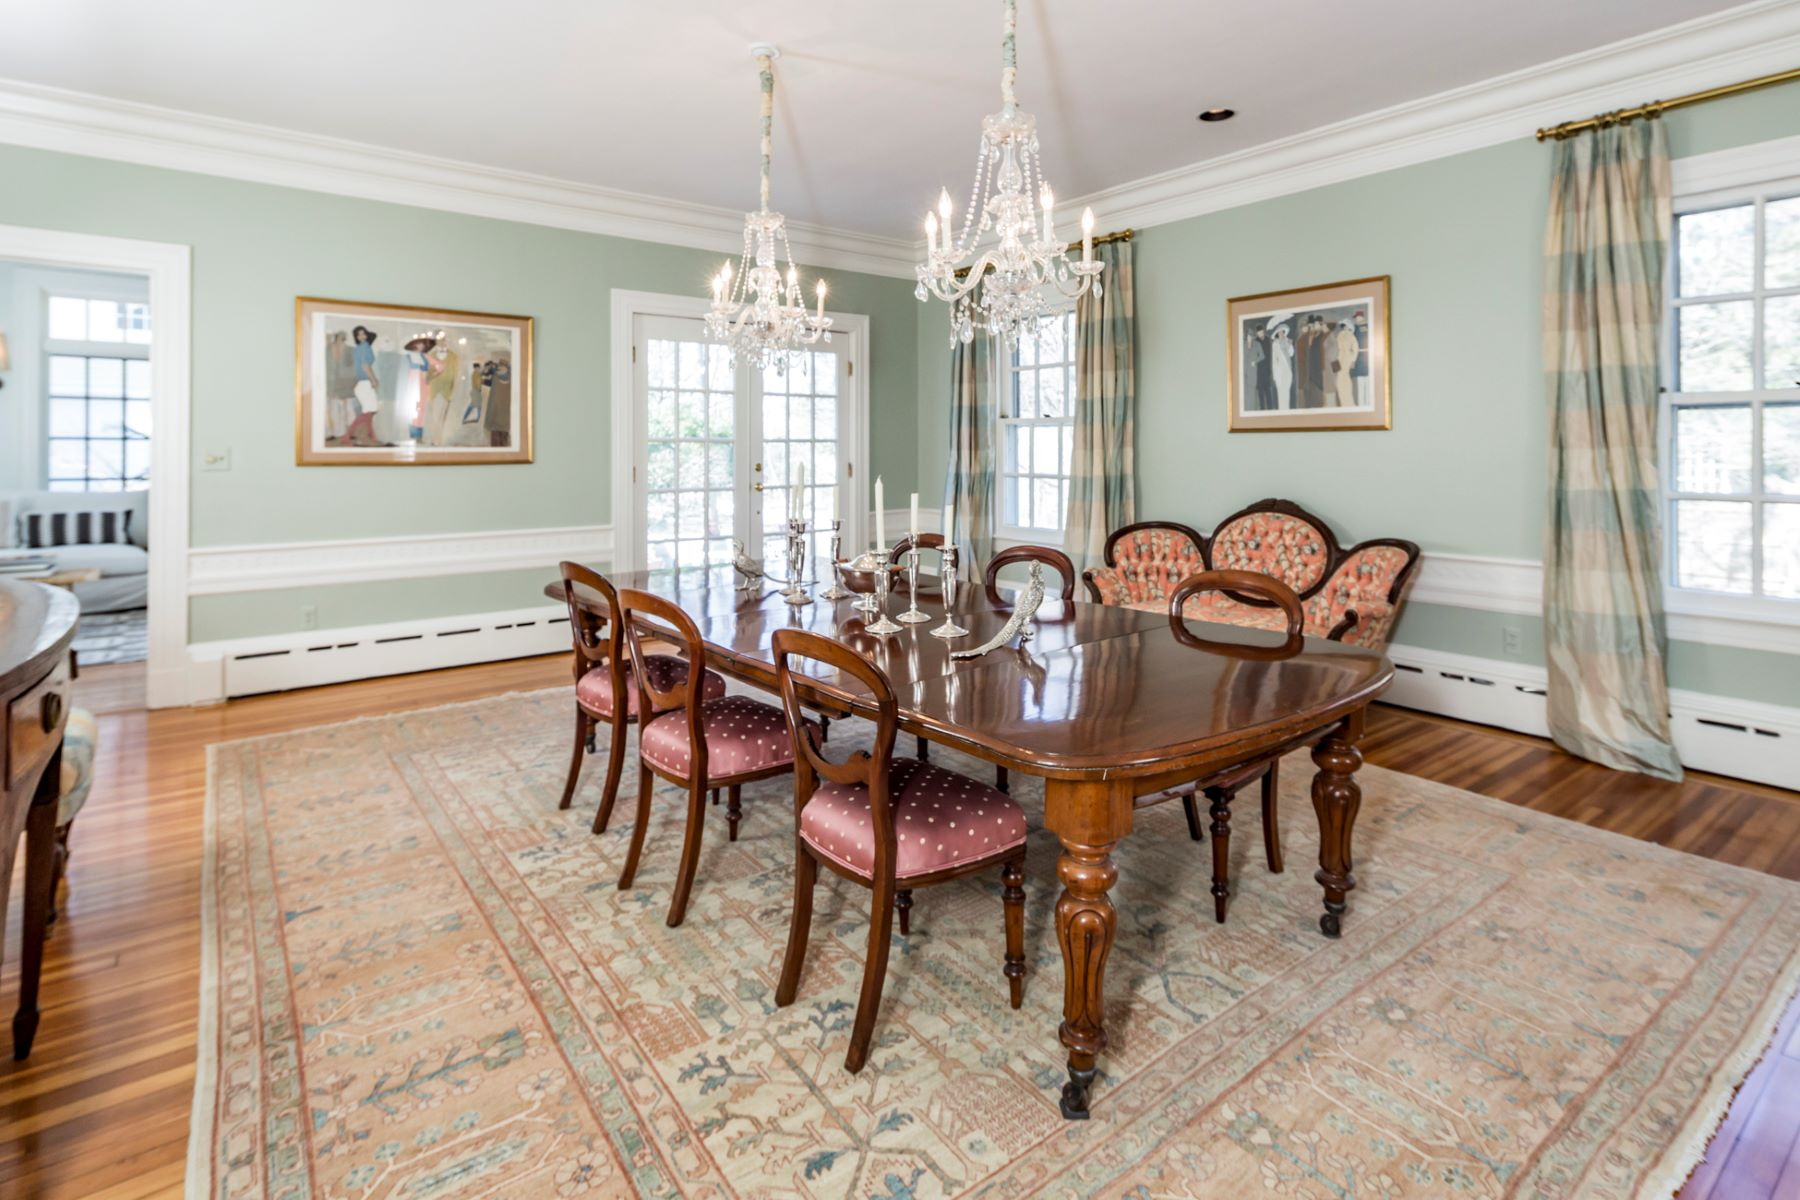 Additional photo for property listing at A Western Section Stunner 130 Library Place, Princeton, New Jersey 08540 United States